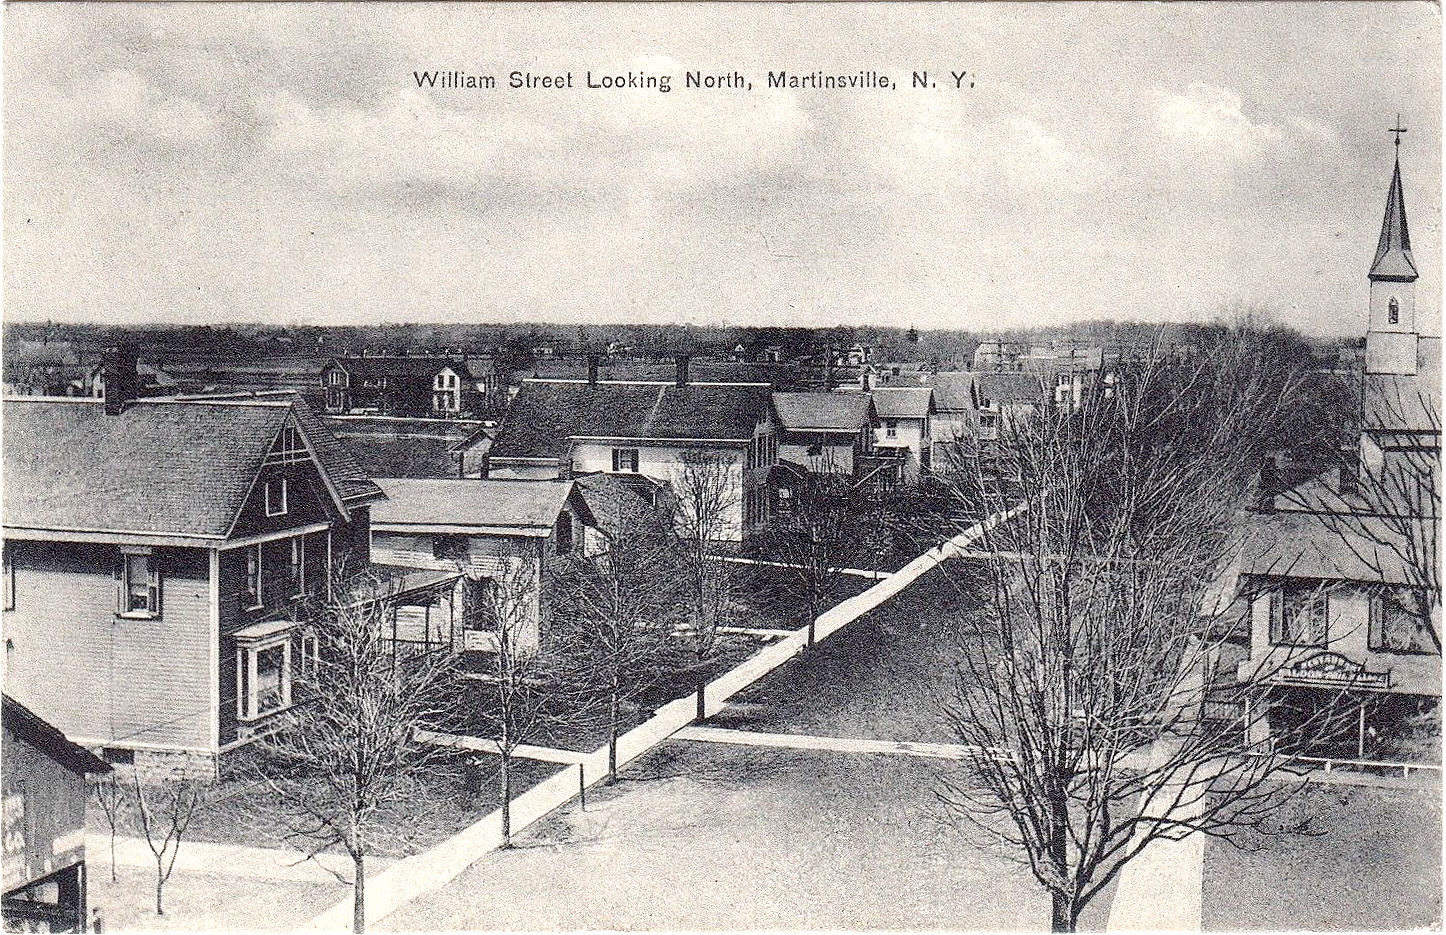 William Street Looking North, Martinsville, postcard (c1910).jpg